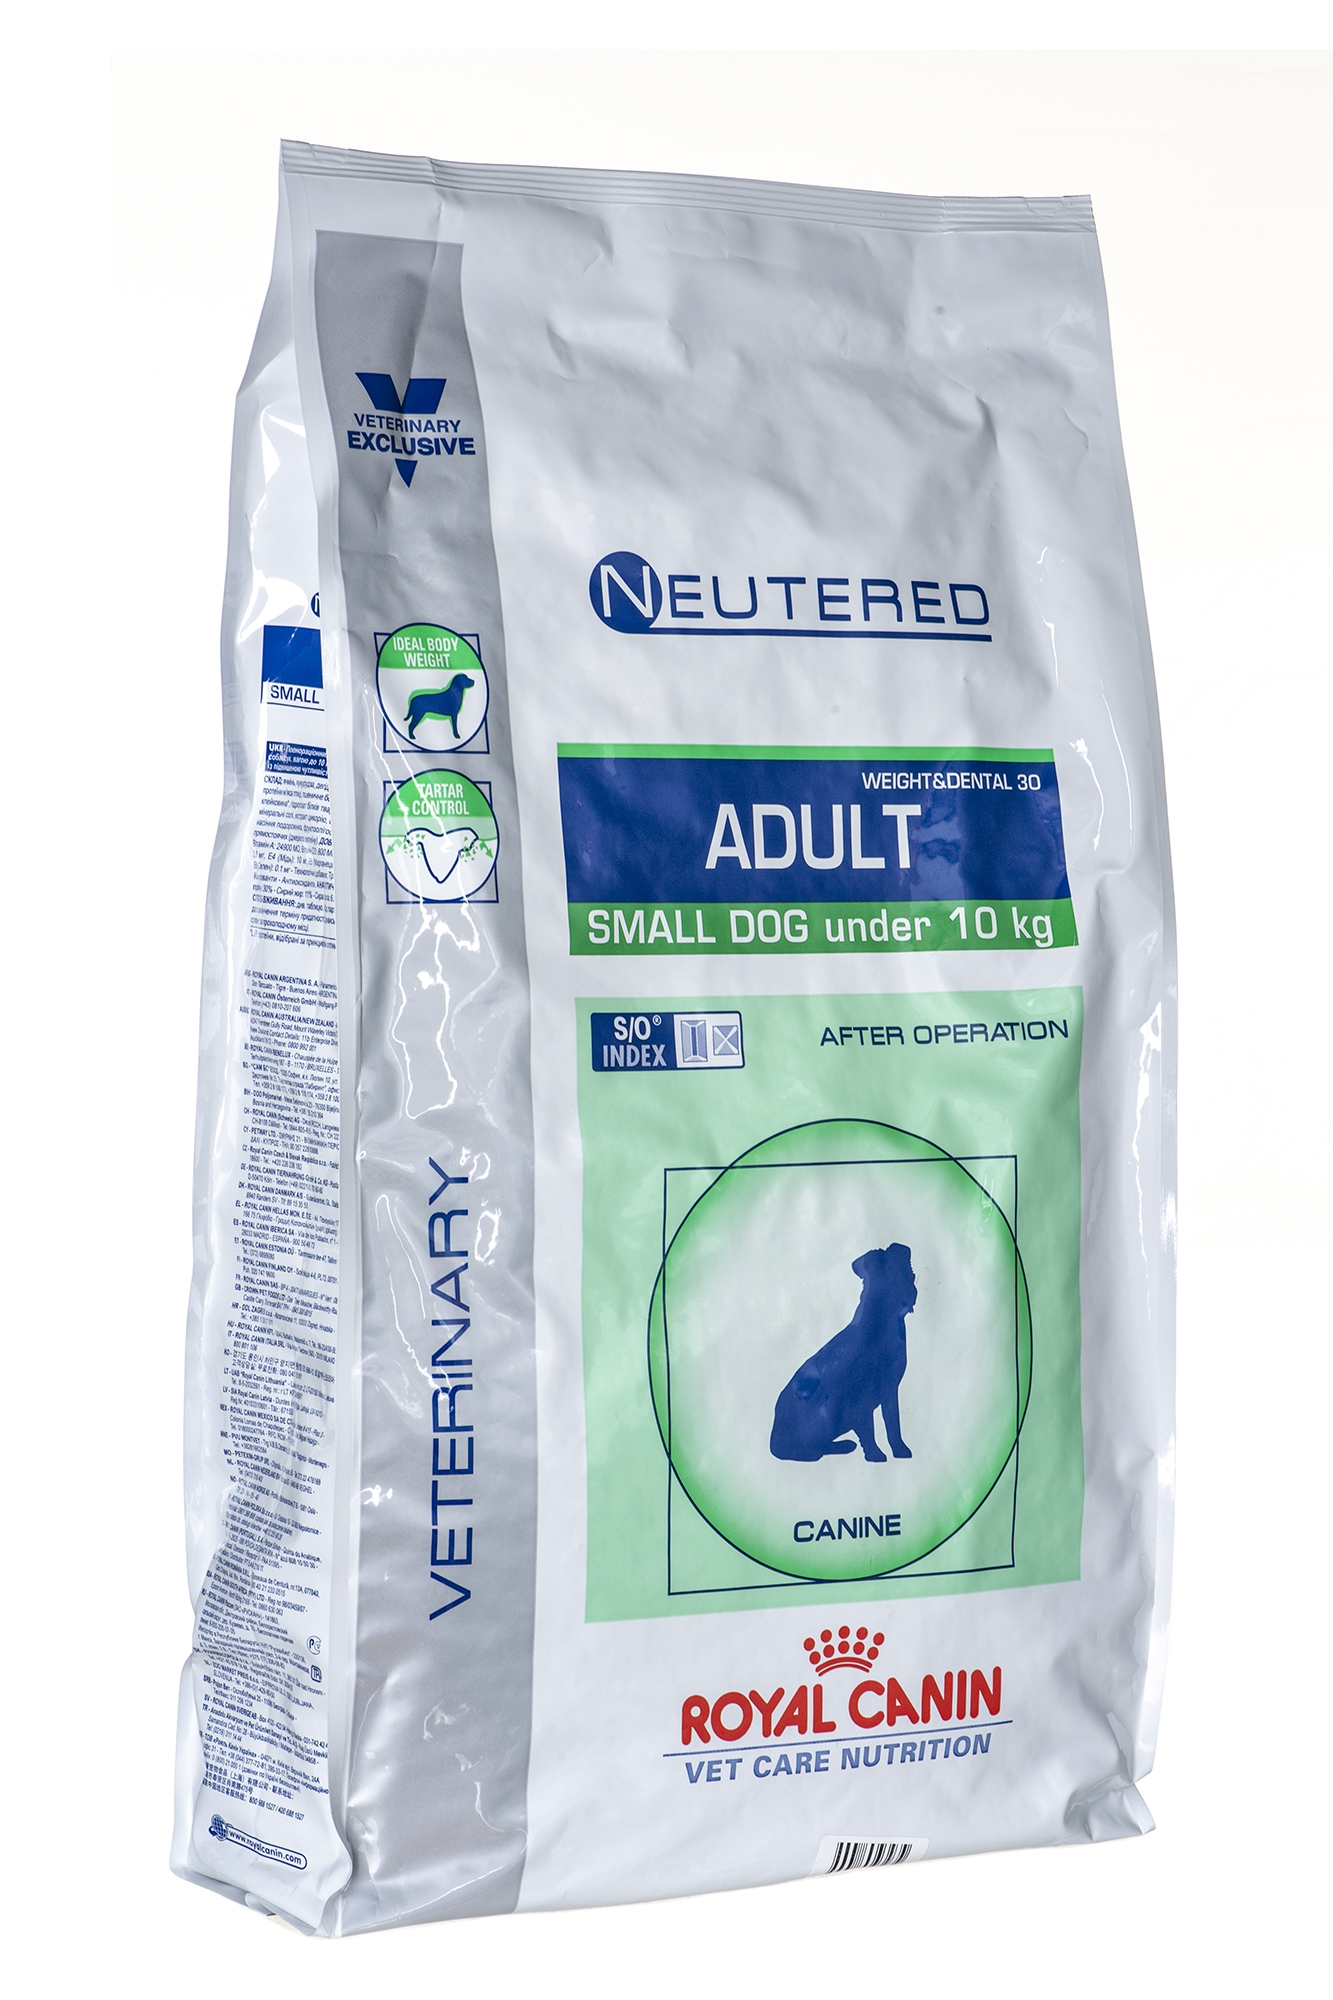 #Karma Royal Canin Neut Adult Small Dog Weight & Dent 8kg